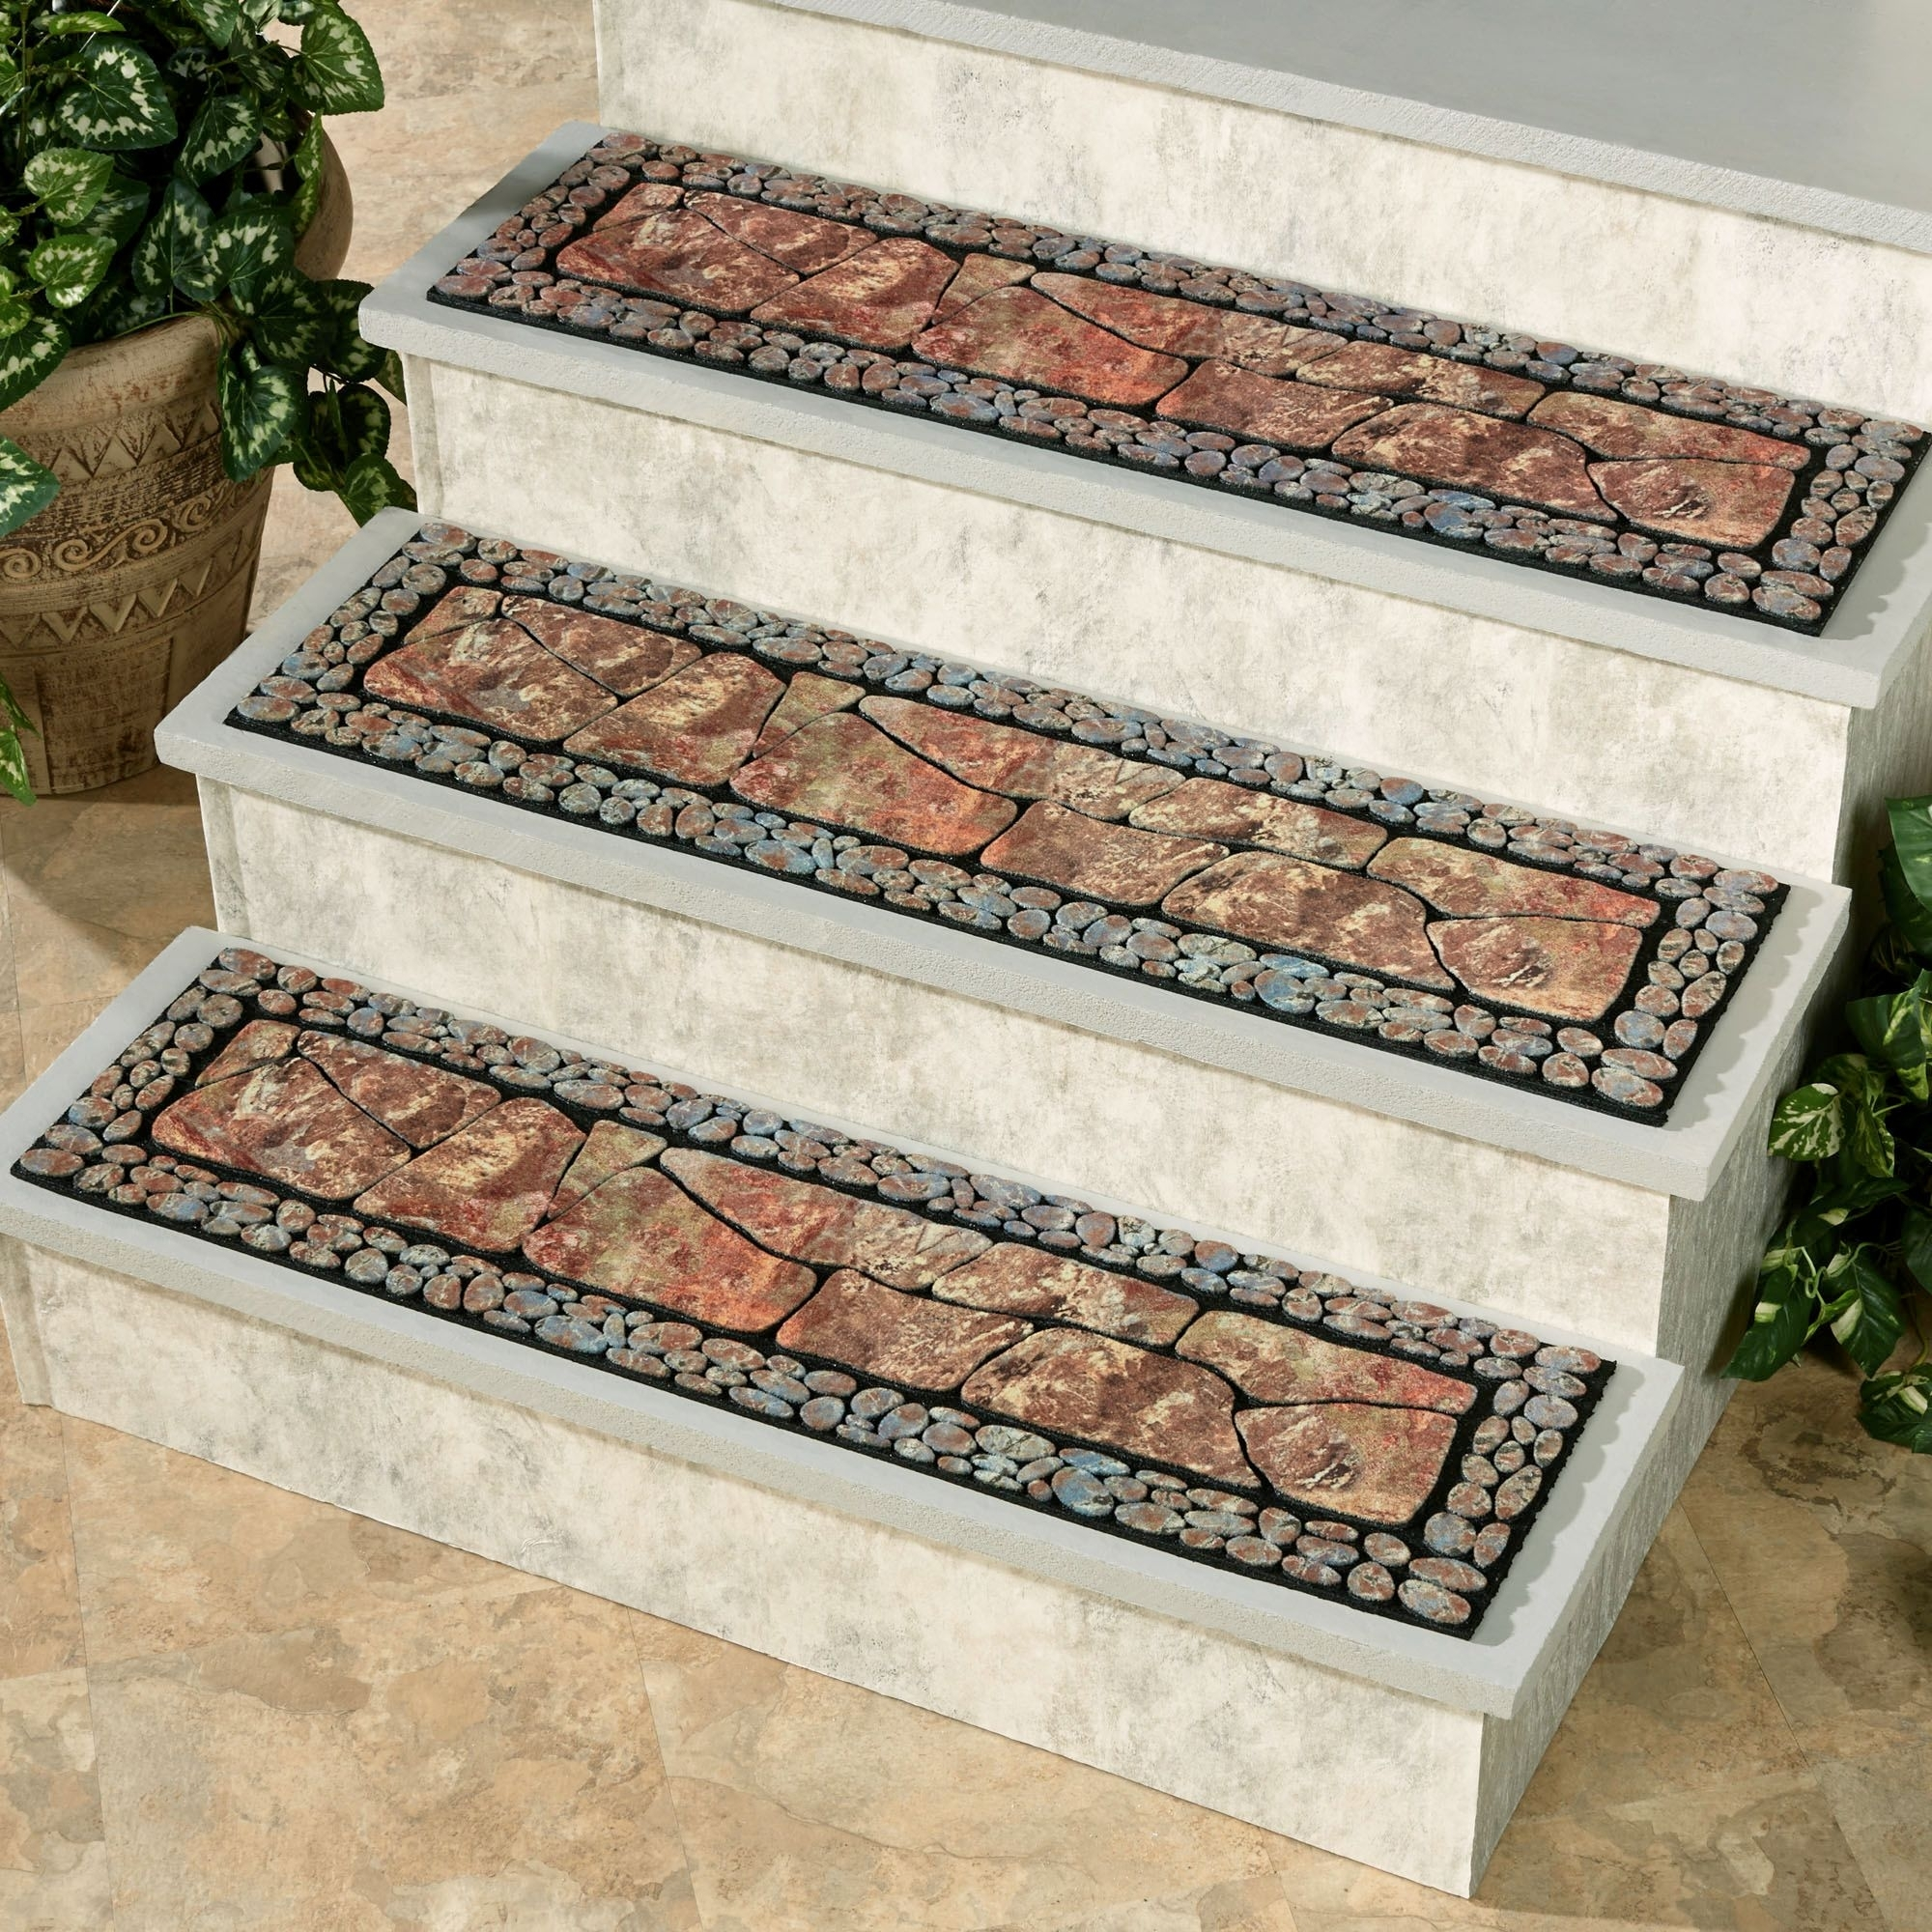 Find Ideal Material For Outdoor Stair Tread Modern Home Interior Within Decorative Indoor Stair Treads (Image 8 of 15)